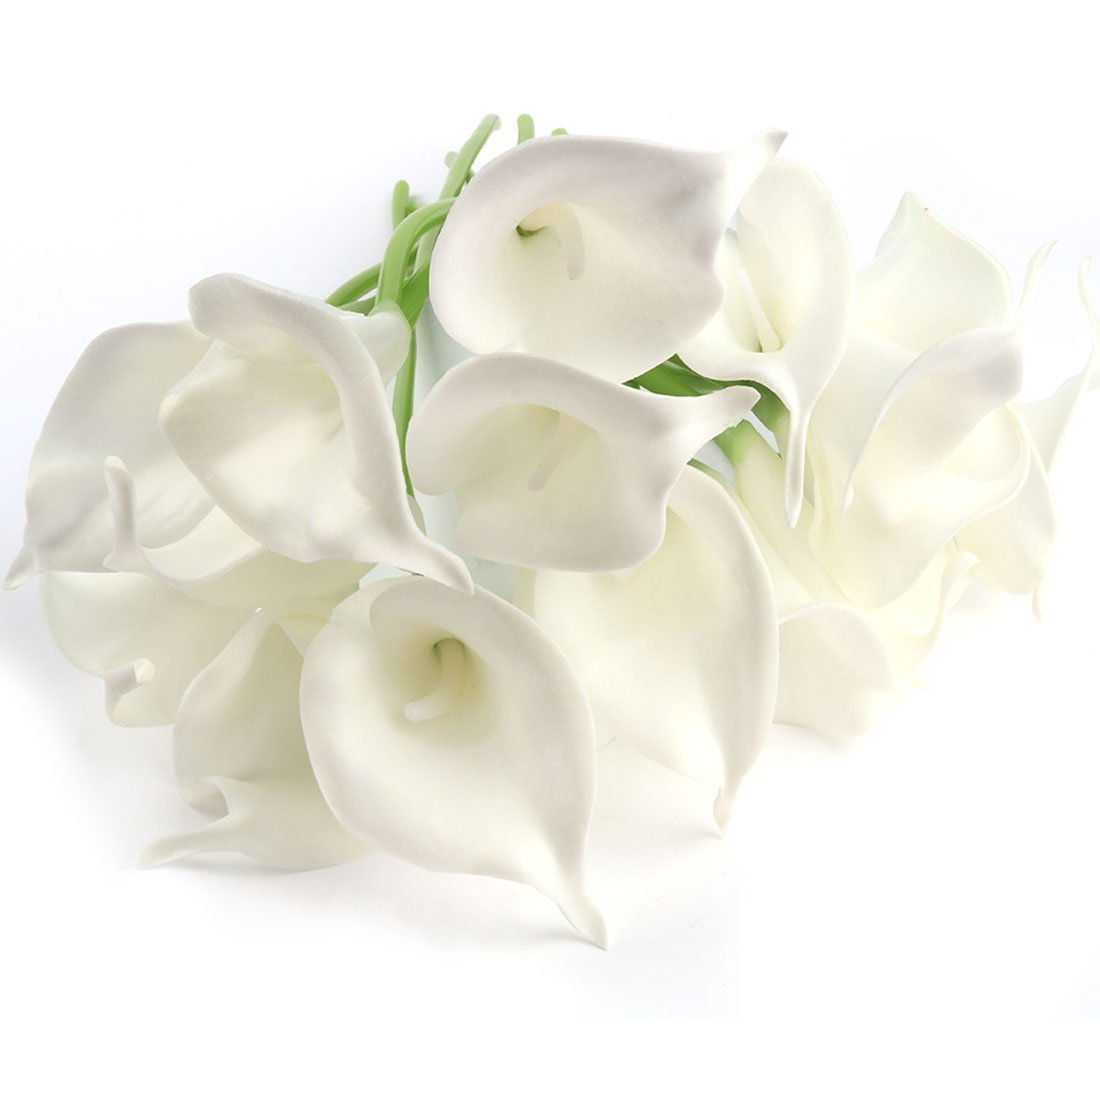 Cheap pu flowers of lily find pu flowers of lily deals on line at get quotations uxcell artificial flowerscalla lily artificial flowers bridal wedding bouquet head pu real touch flower izmirmasajfo